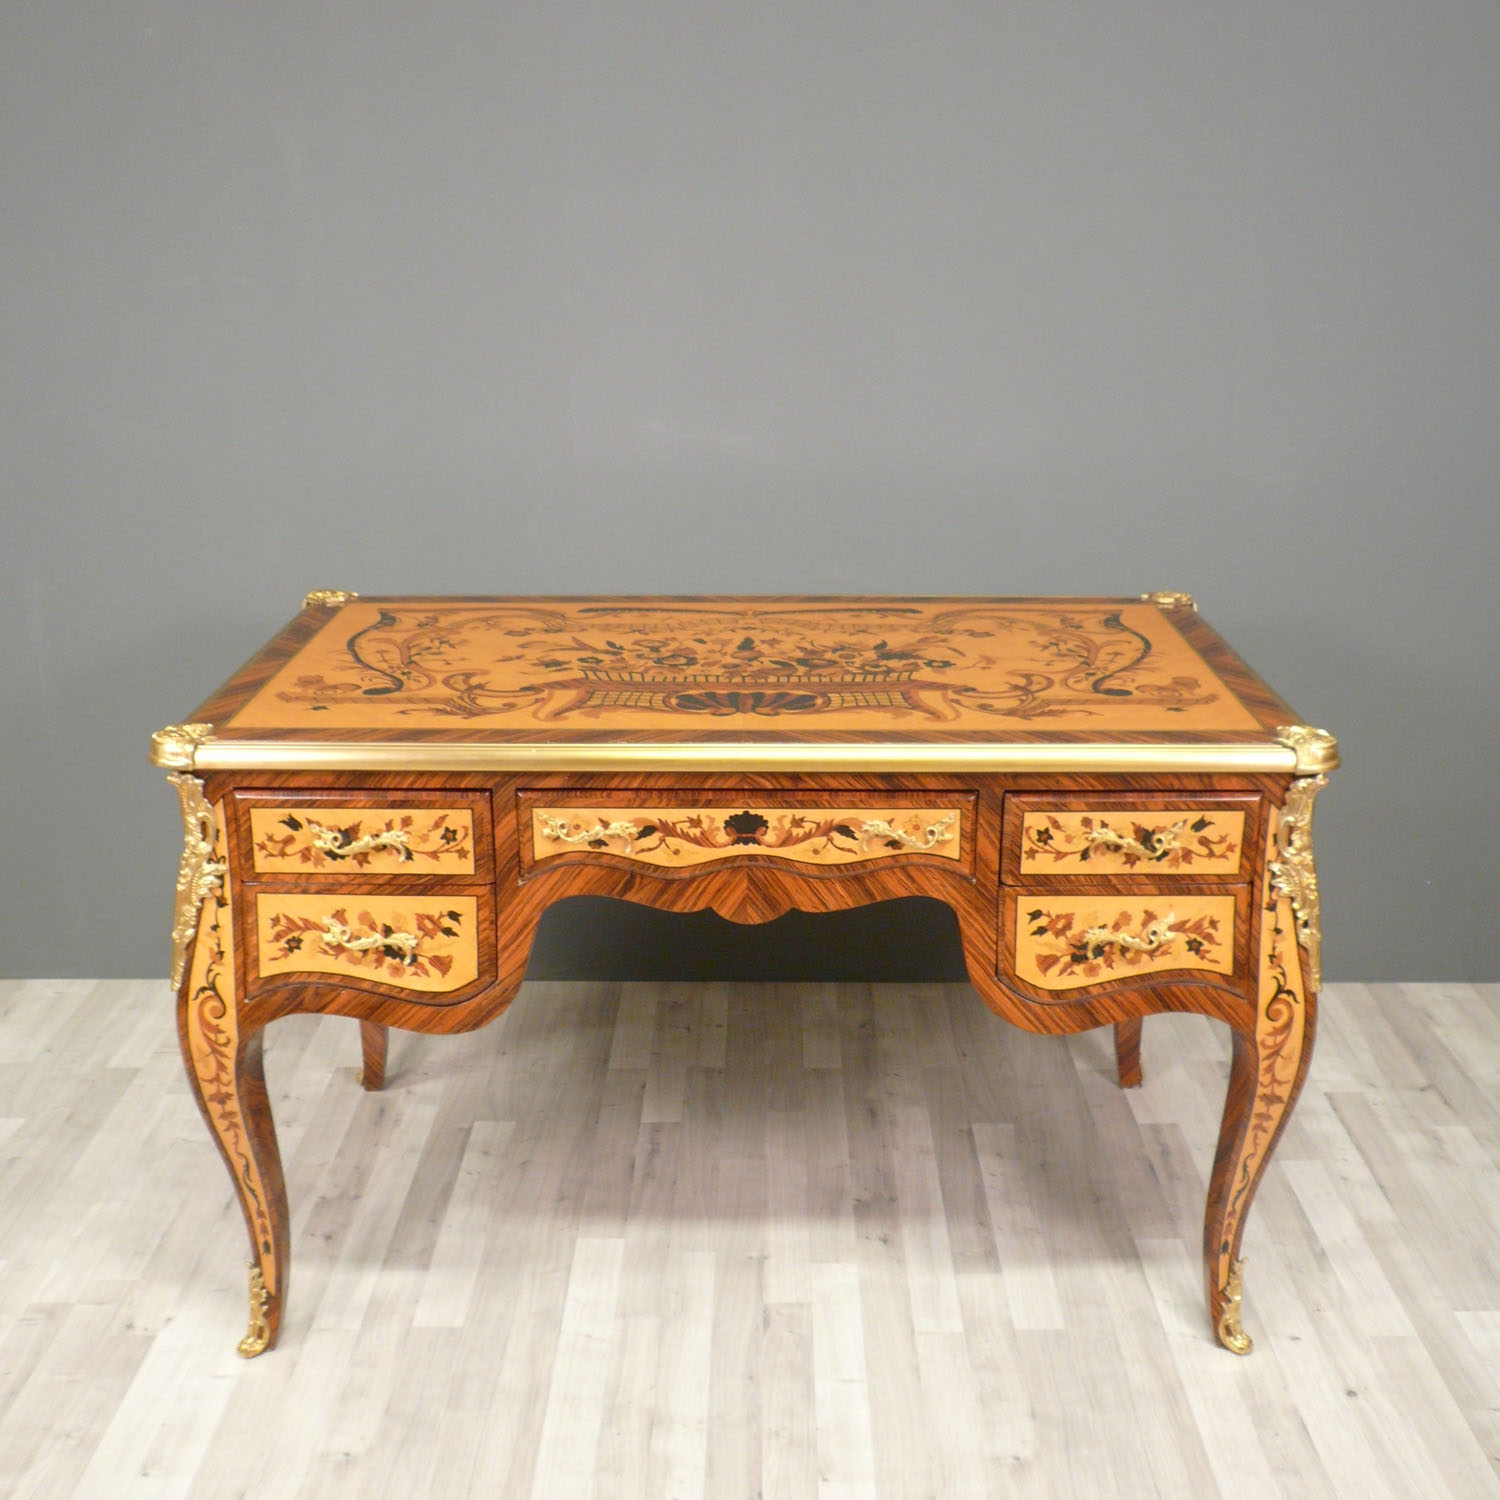 Bureau louis xv commode louis xv fauteuil louis xv for Meuble louis xv